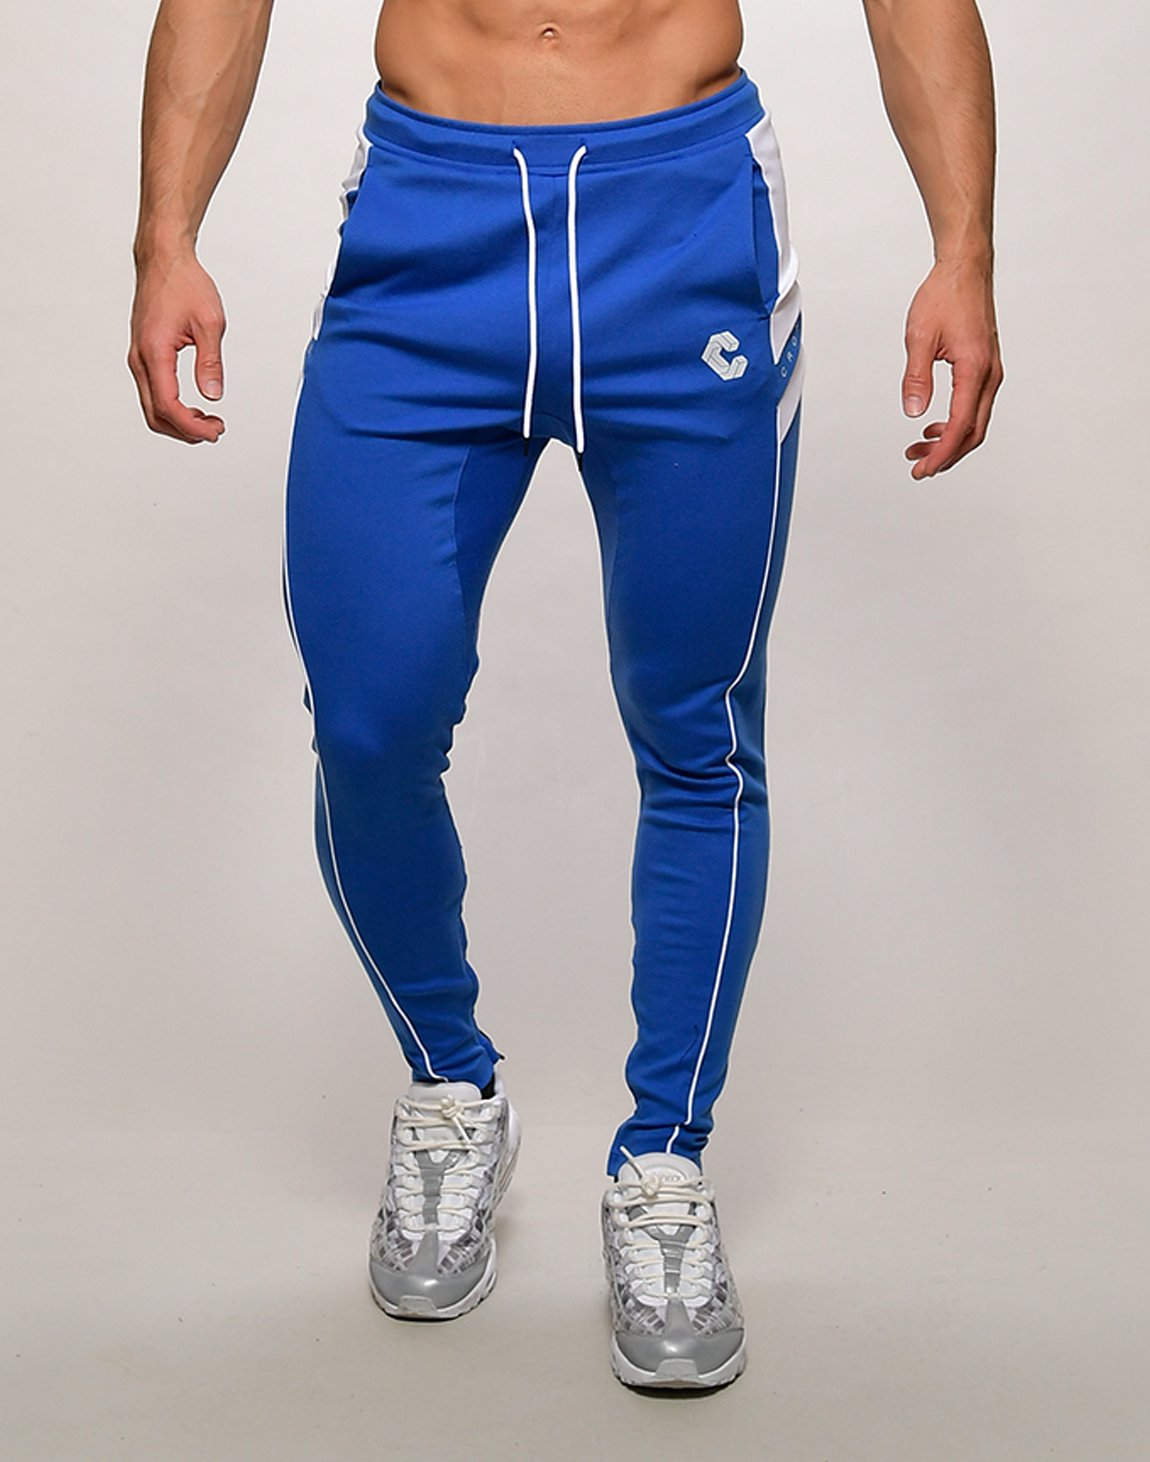 <img class='new_mark_img1' src='https://img.shop-pro.jp/img/new/icons55.gif' style='border:none;display:inline;margin:0px;padding:0px;width:auto;' />CRONOS NARROW SWEAT PANTS【BLUE】